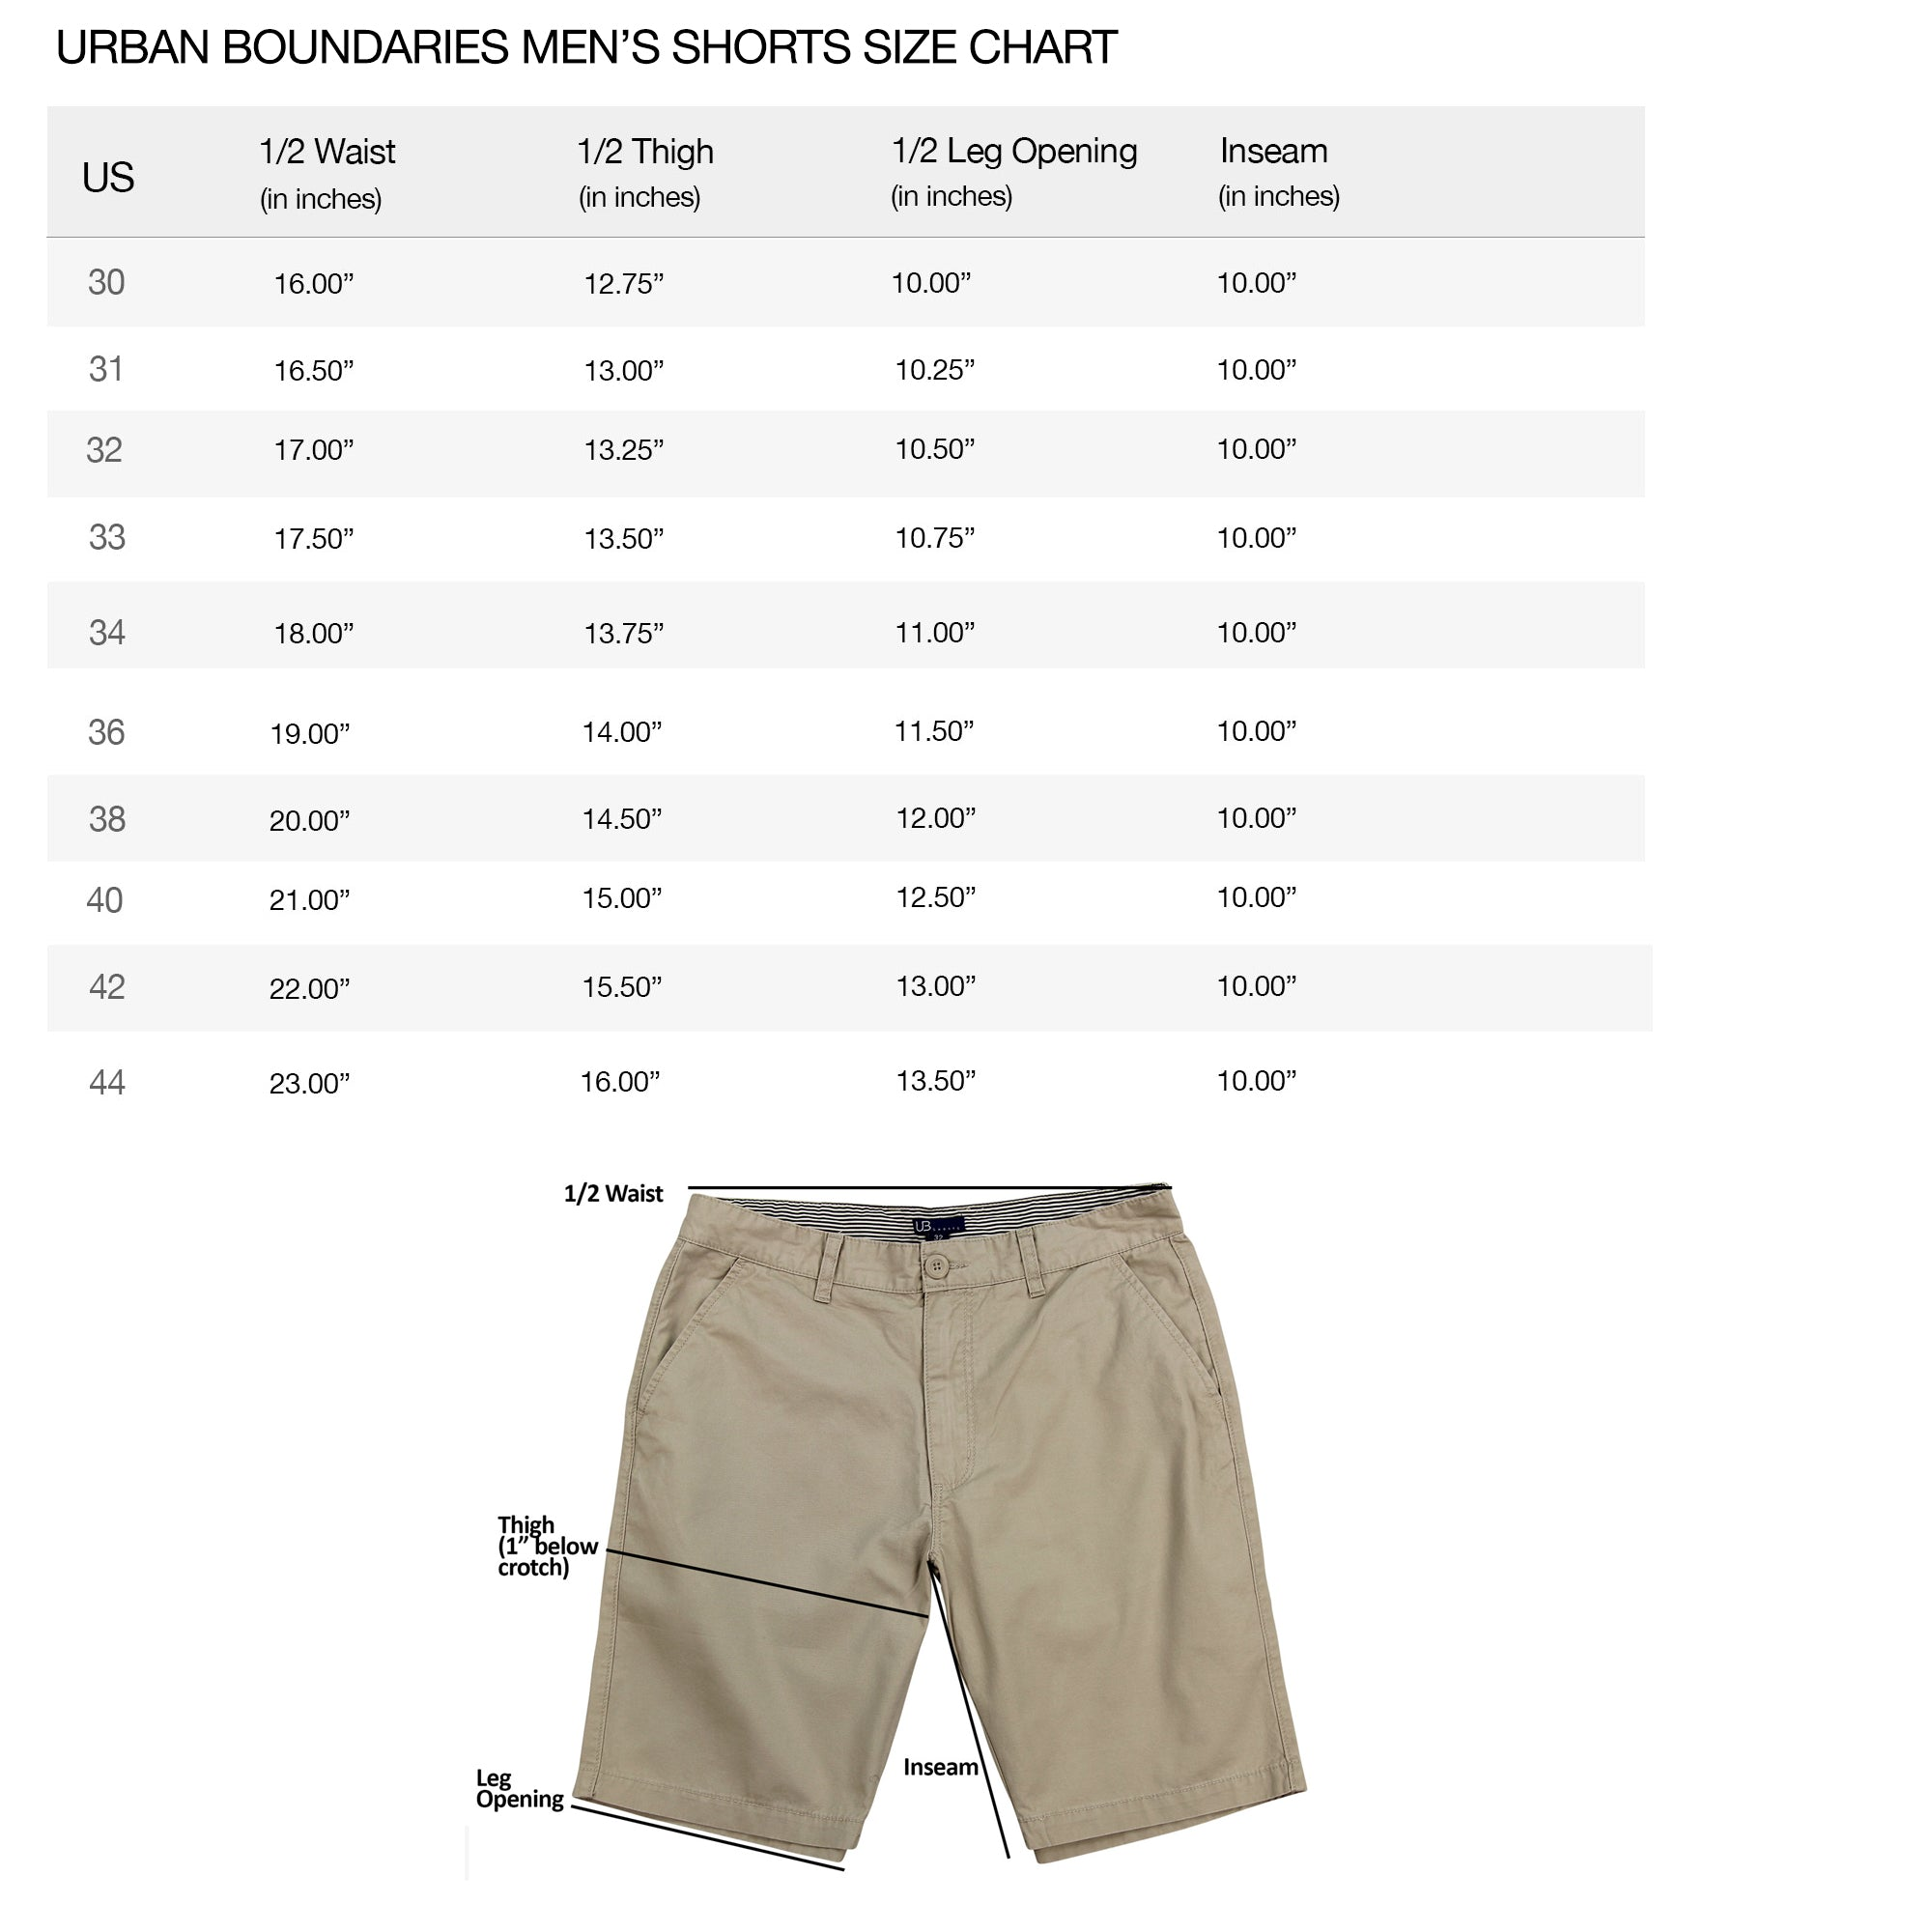 urban boundaries mens shorts size specs